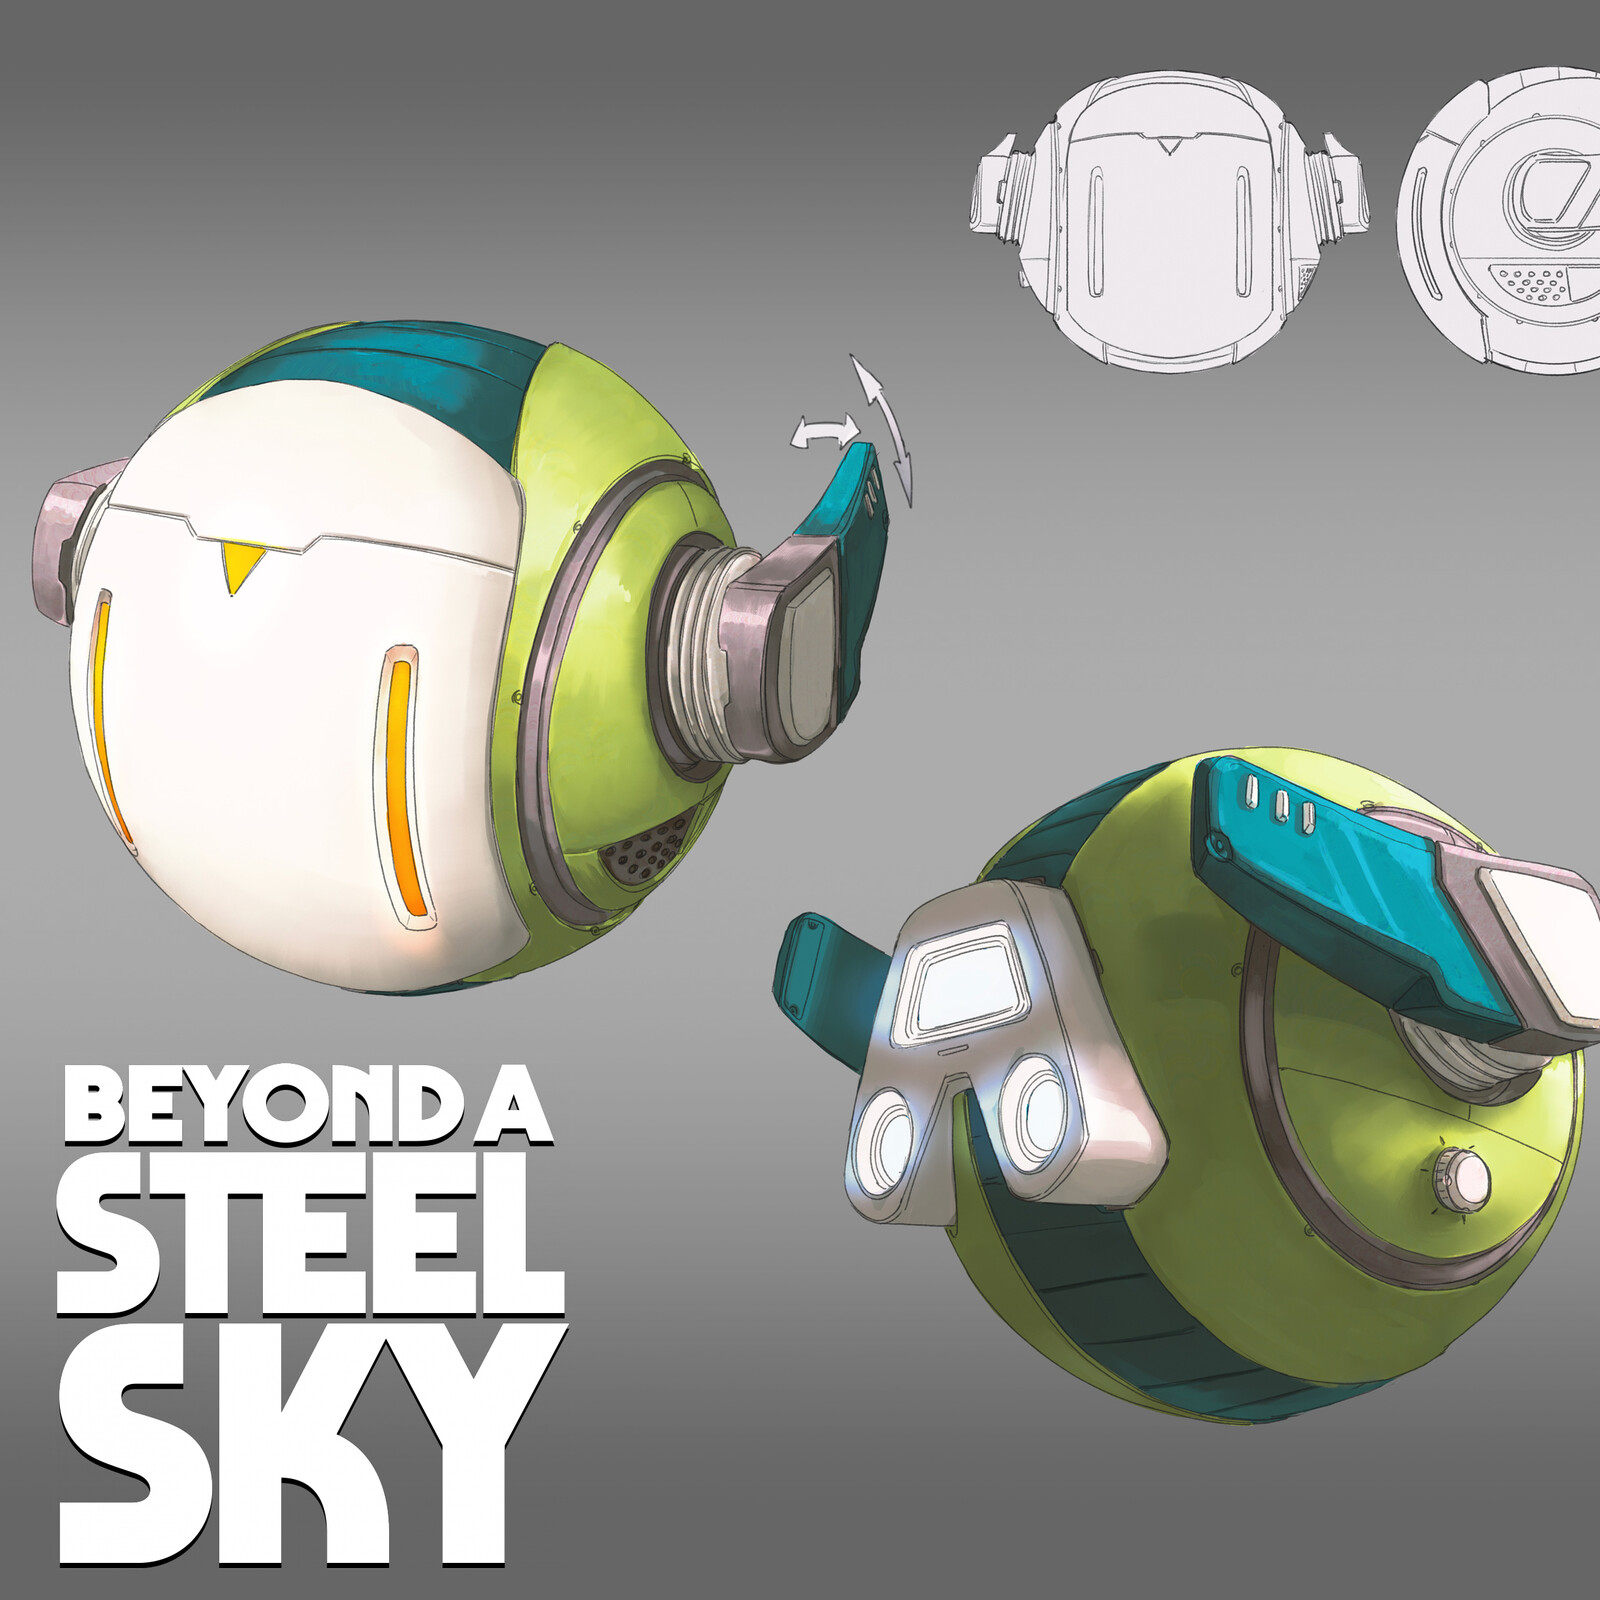 BEYOND A STEEL SKY: Joey shell dron